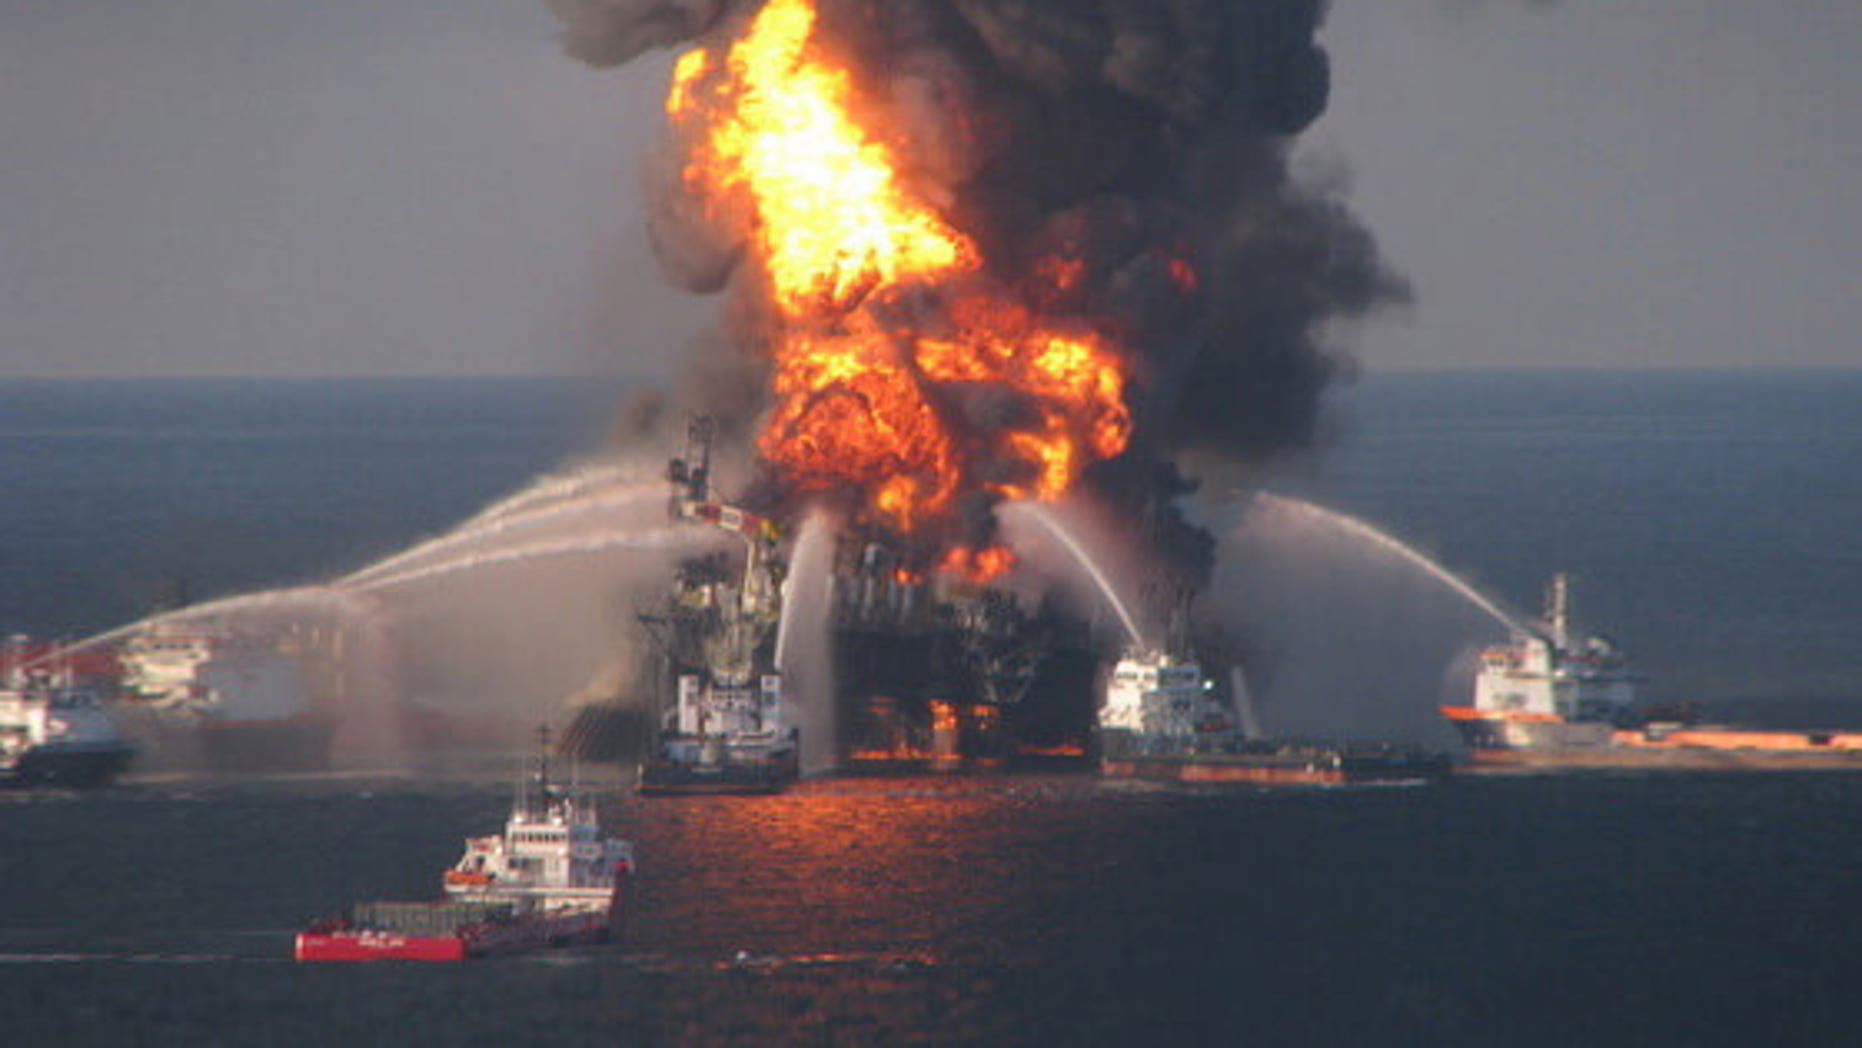 The Tampa Bay Buccaneers are not entitled to damages from BP for the 2010 Deepwater Horizon oil spill, a court ruled.